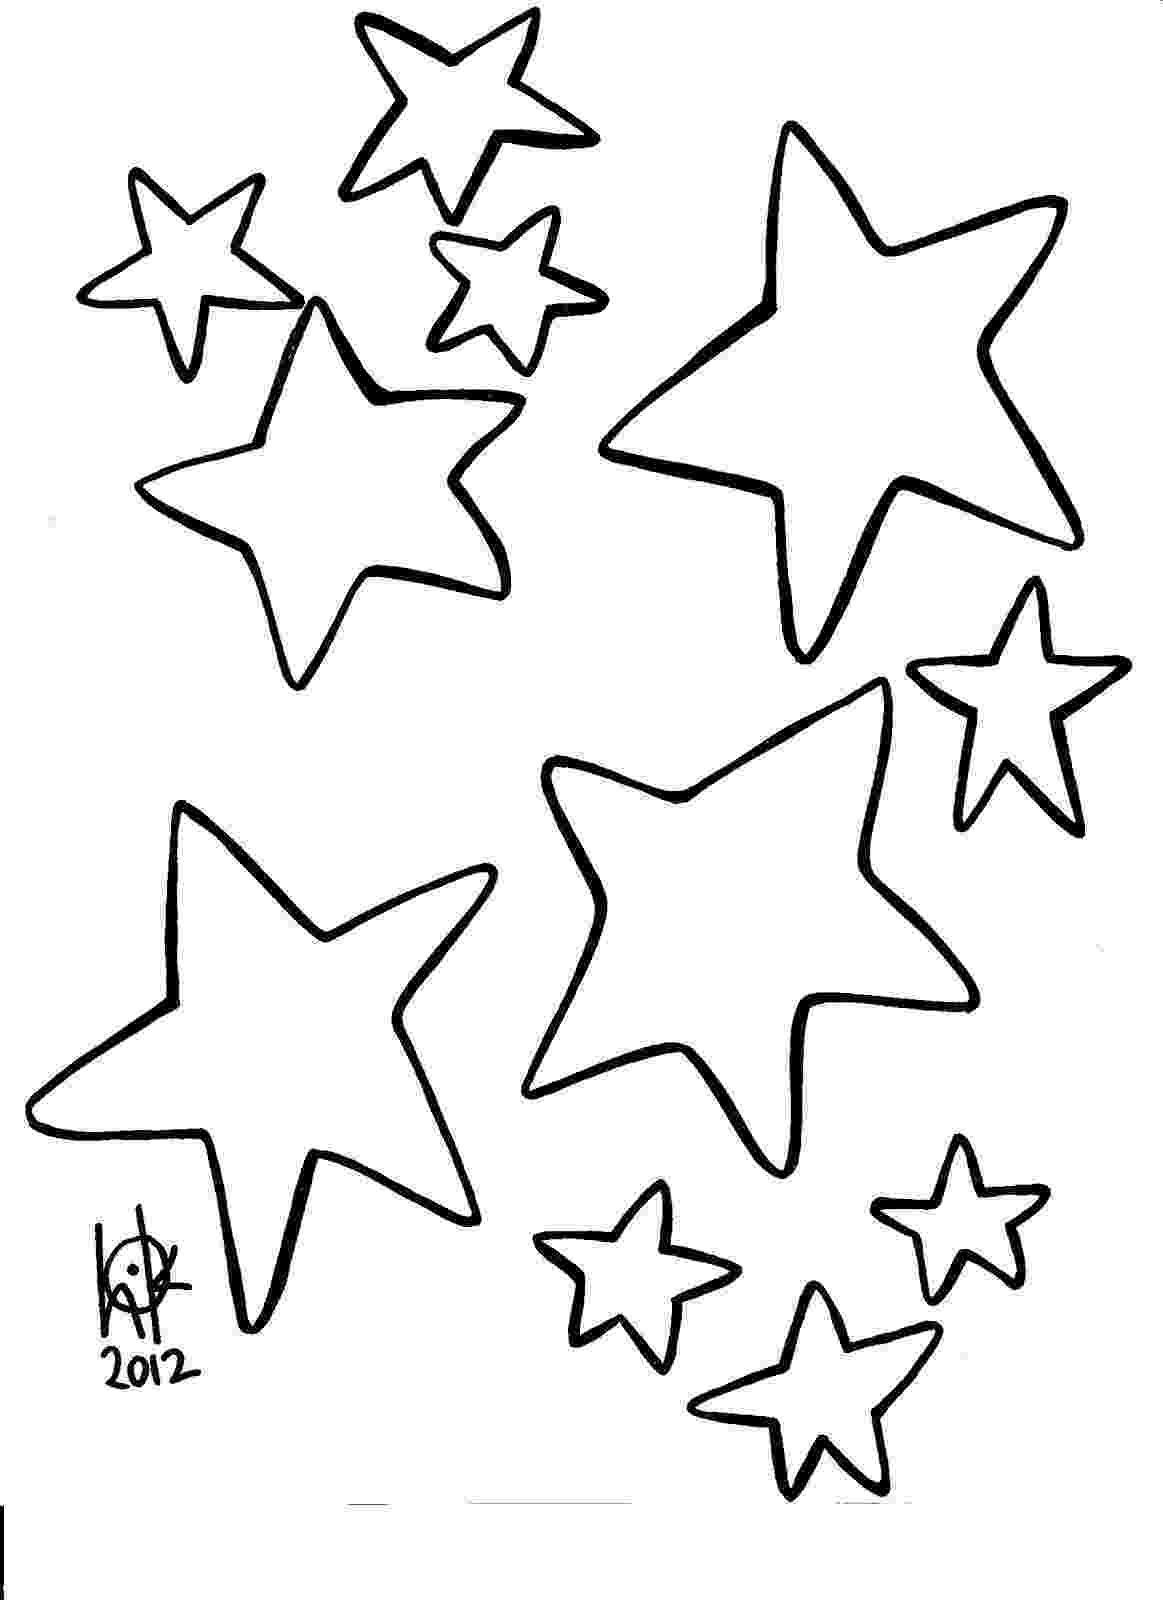 picture of a star to color star outline printable coloring home star a color picture to of